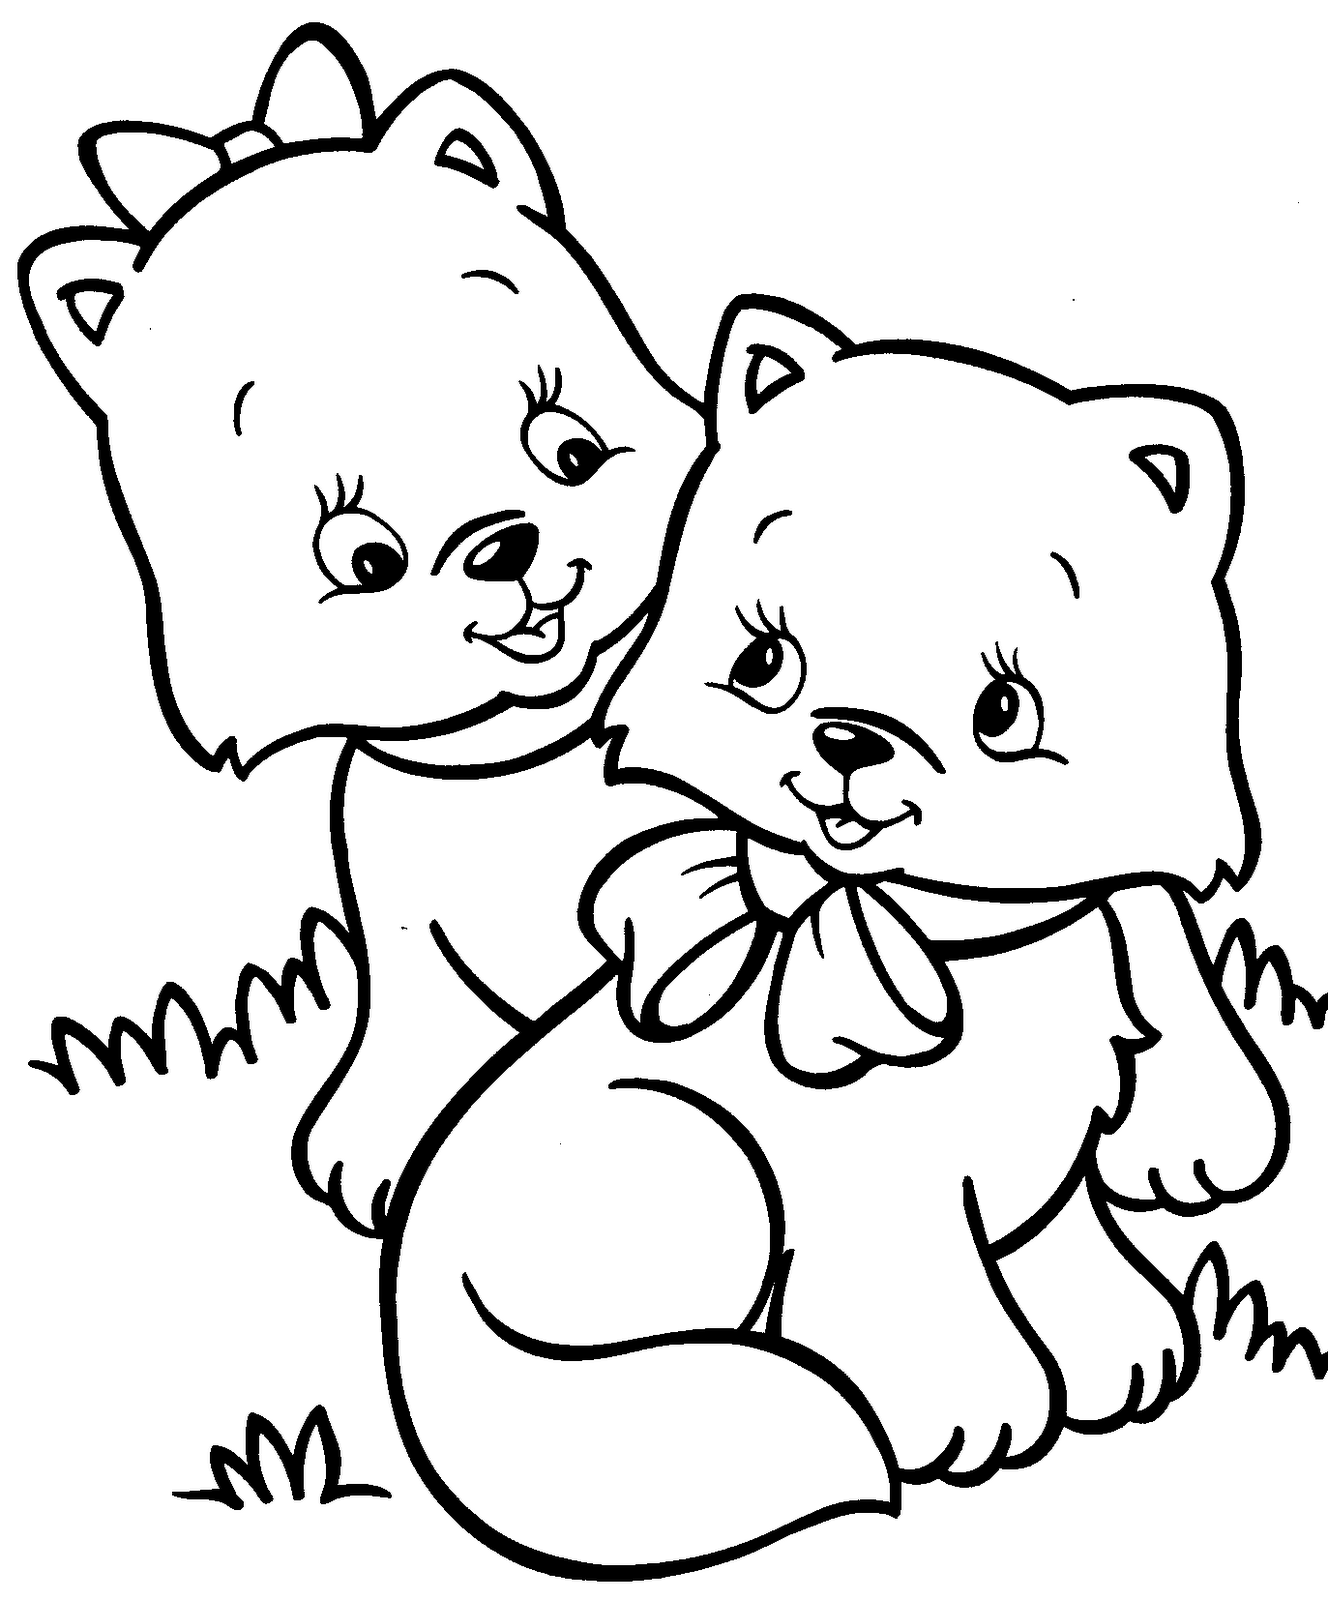 coloring pages of kittens to print kitten coloring pages coloring pages to print print coloring to pages of kittens